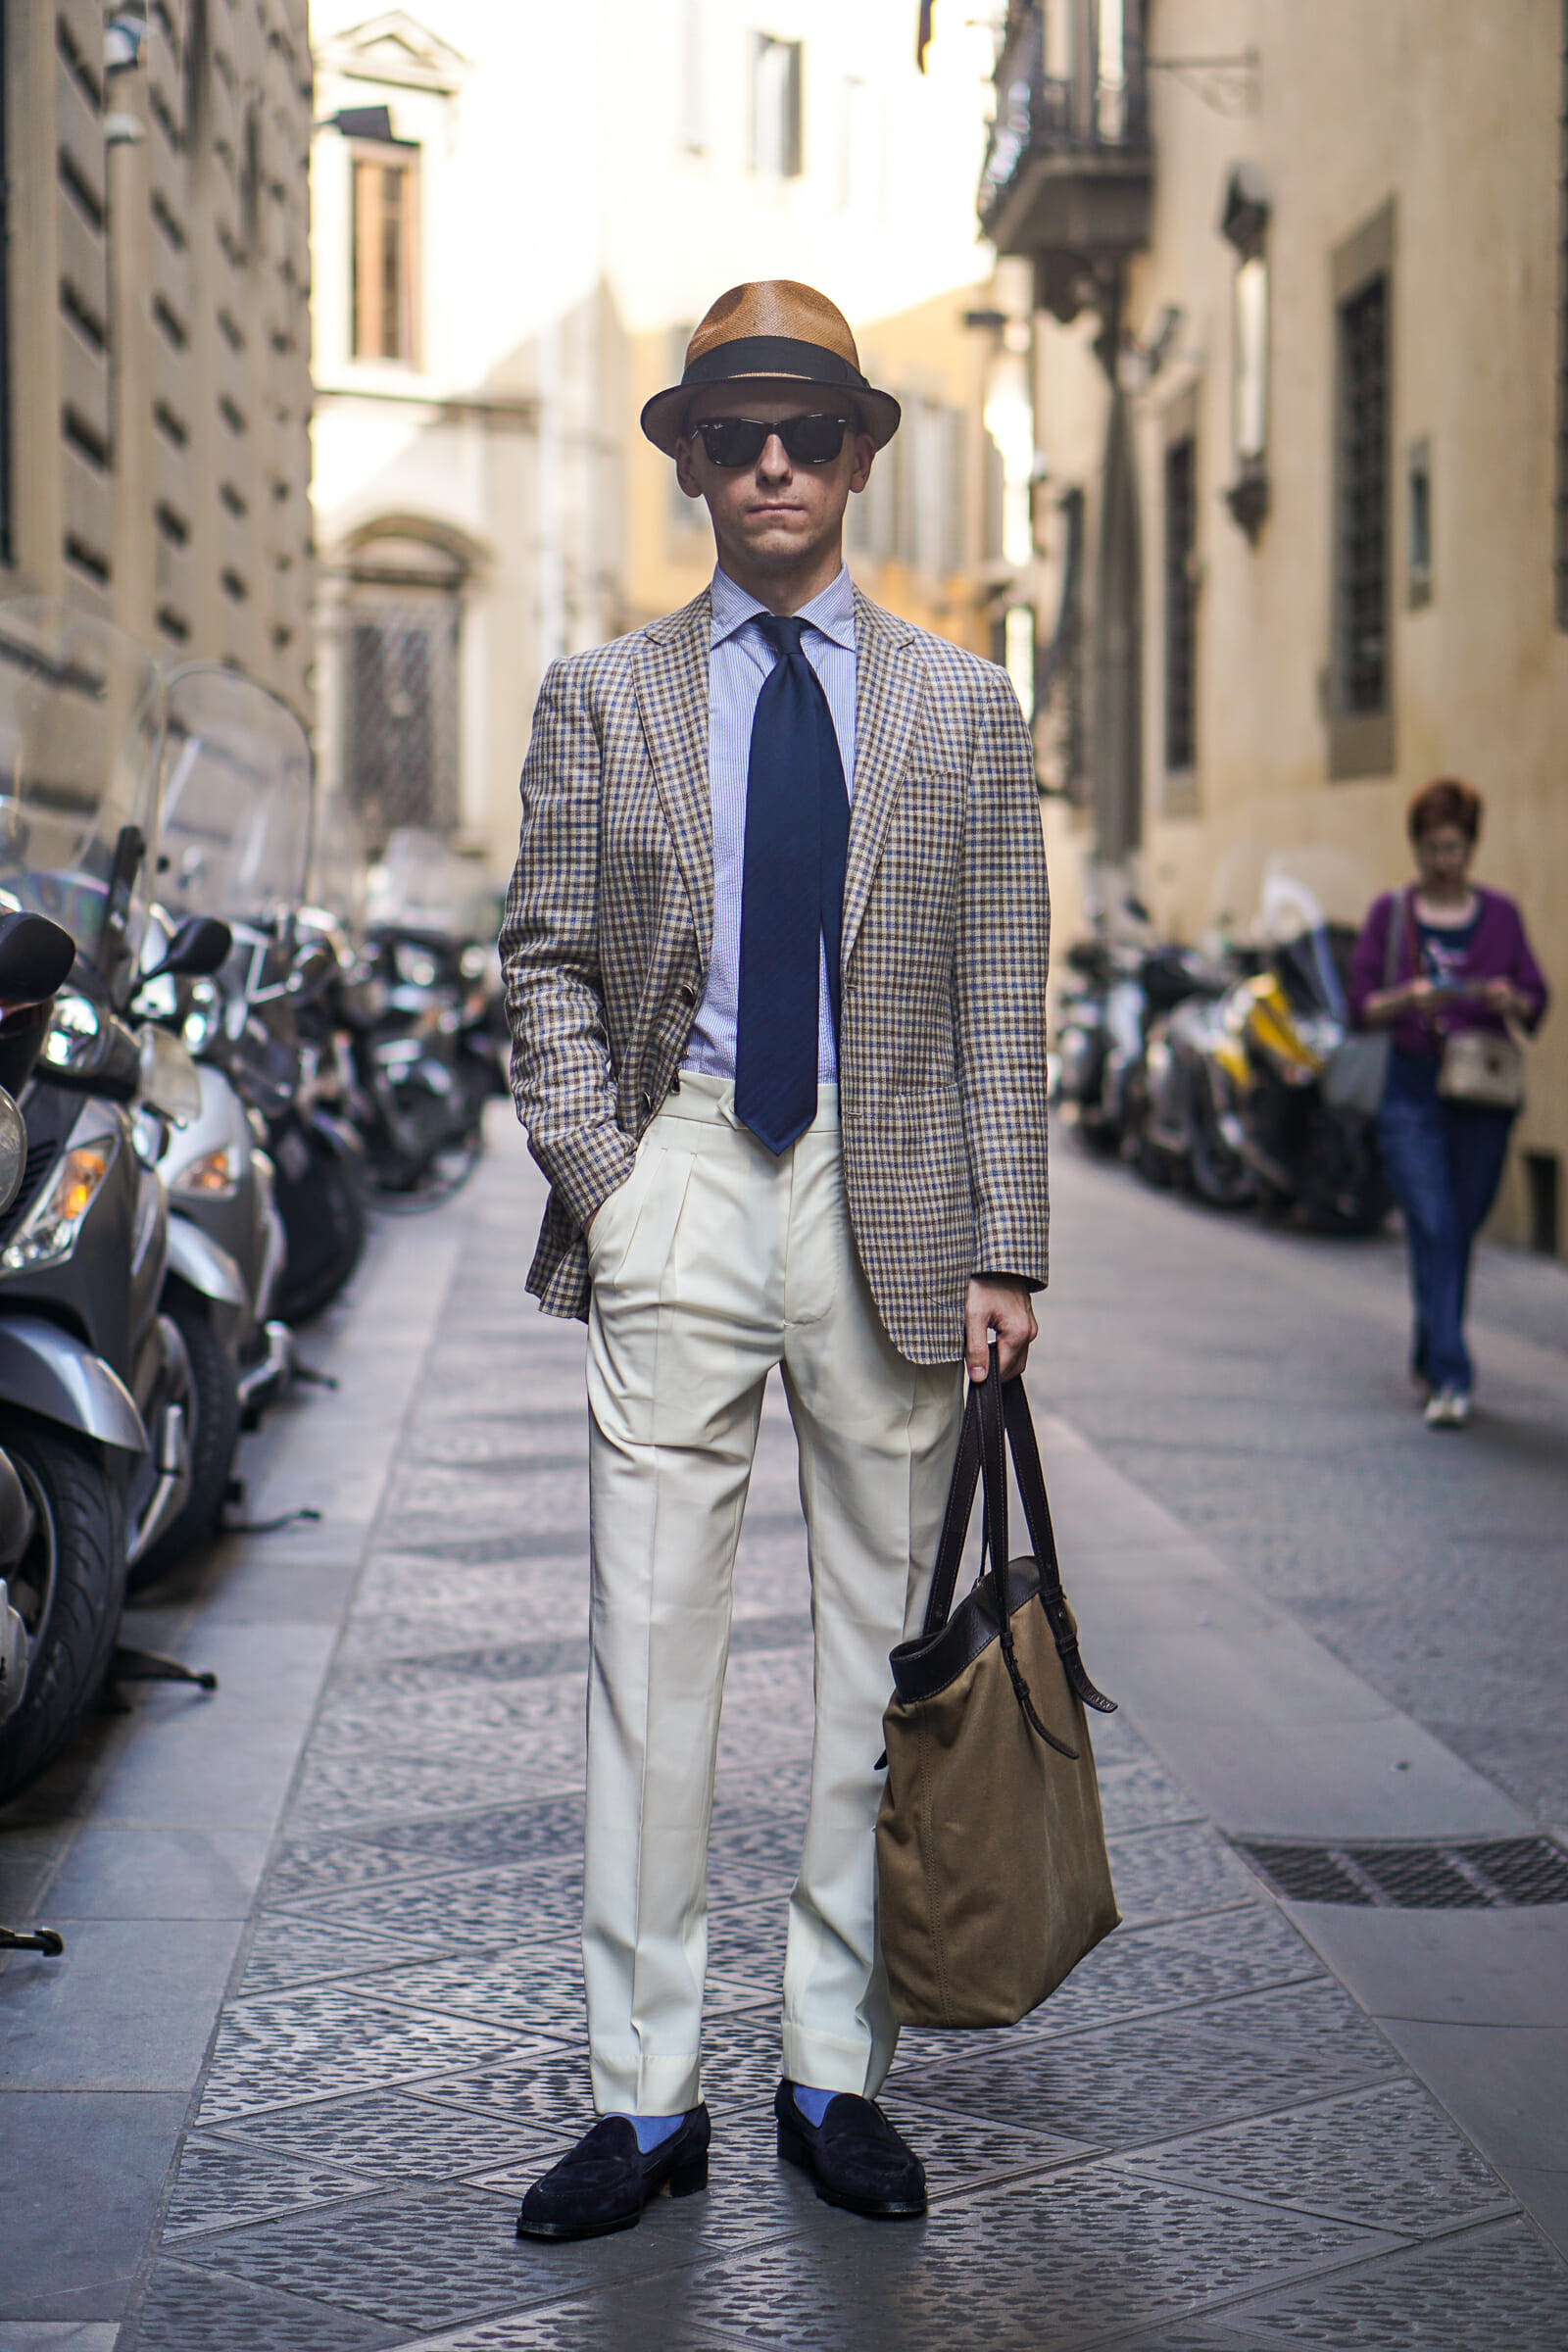 Should Men Wear Pleated Pants Gentlemans Gazette Tendencies Navy Chinos Short 30 Blogger Blue Loafers Shows How Can Look Good On A Thin Frame If Properly